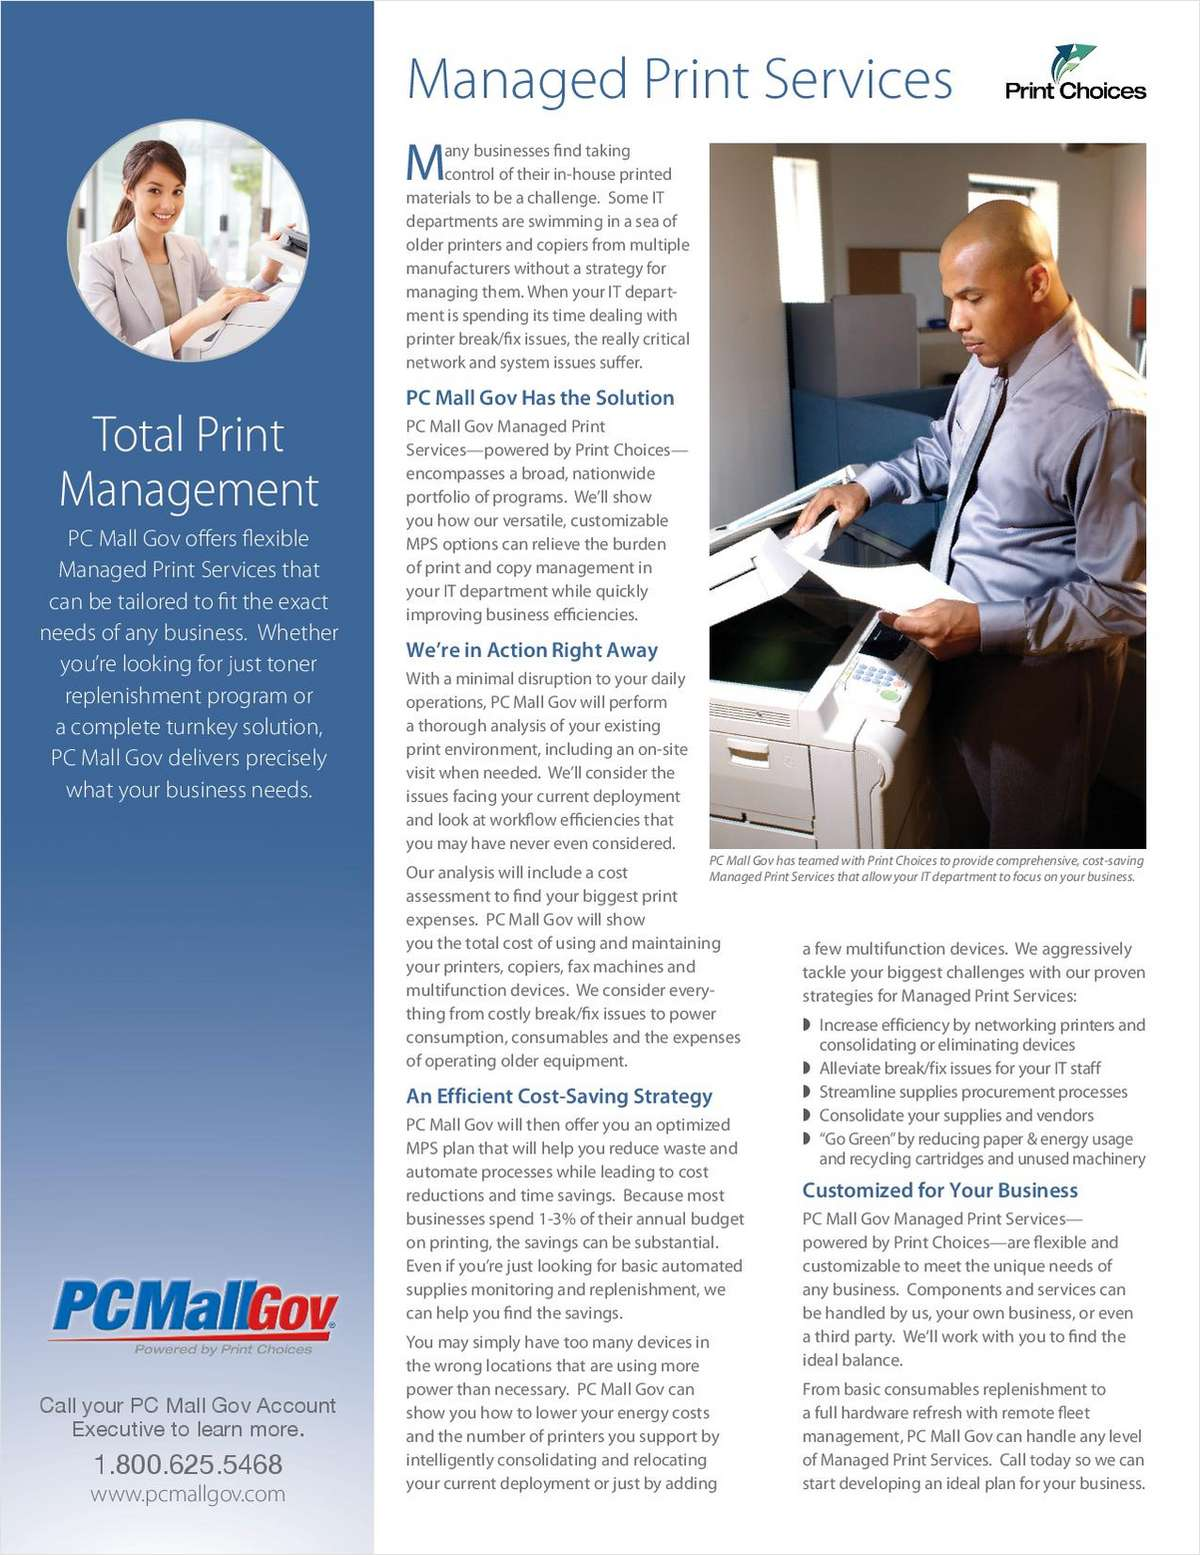 Managed Print Services for Government and Education